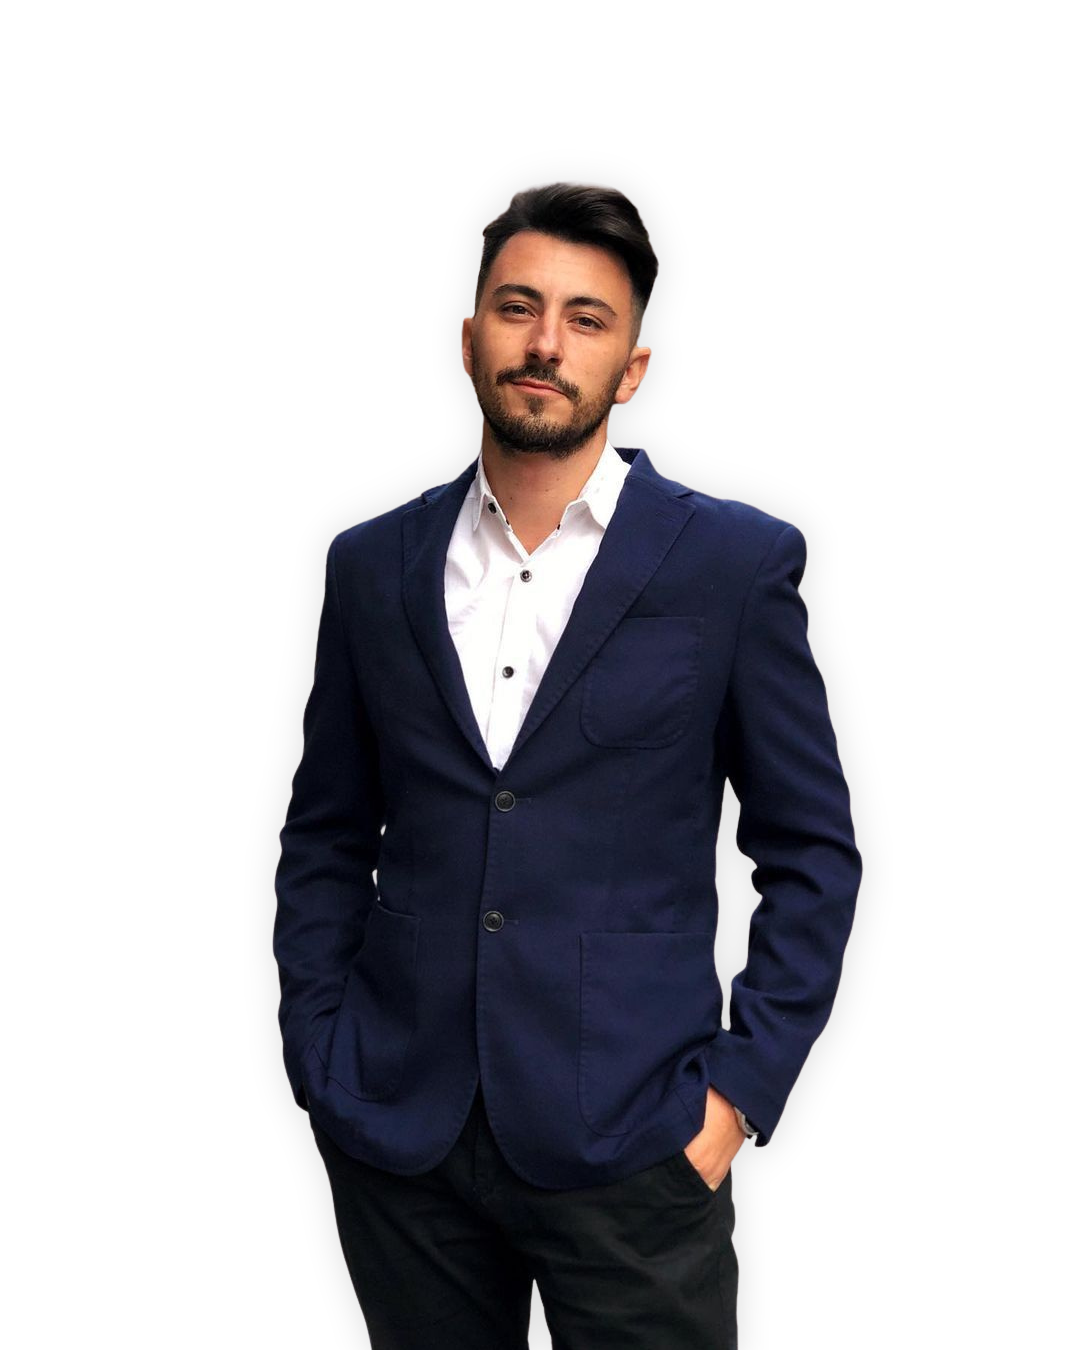 Photo of Marco Genaro Palma, international SEO consultant in Amsterdam and Stockholm